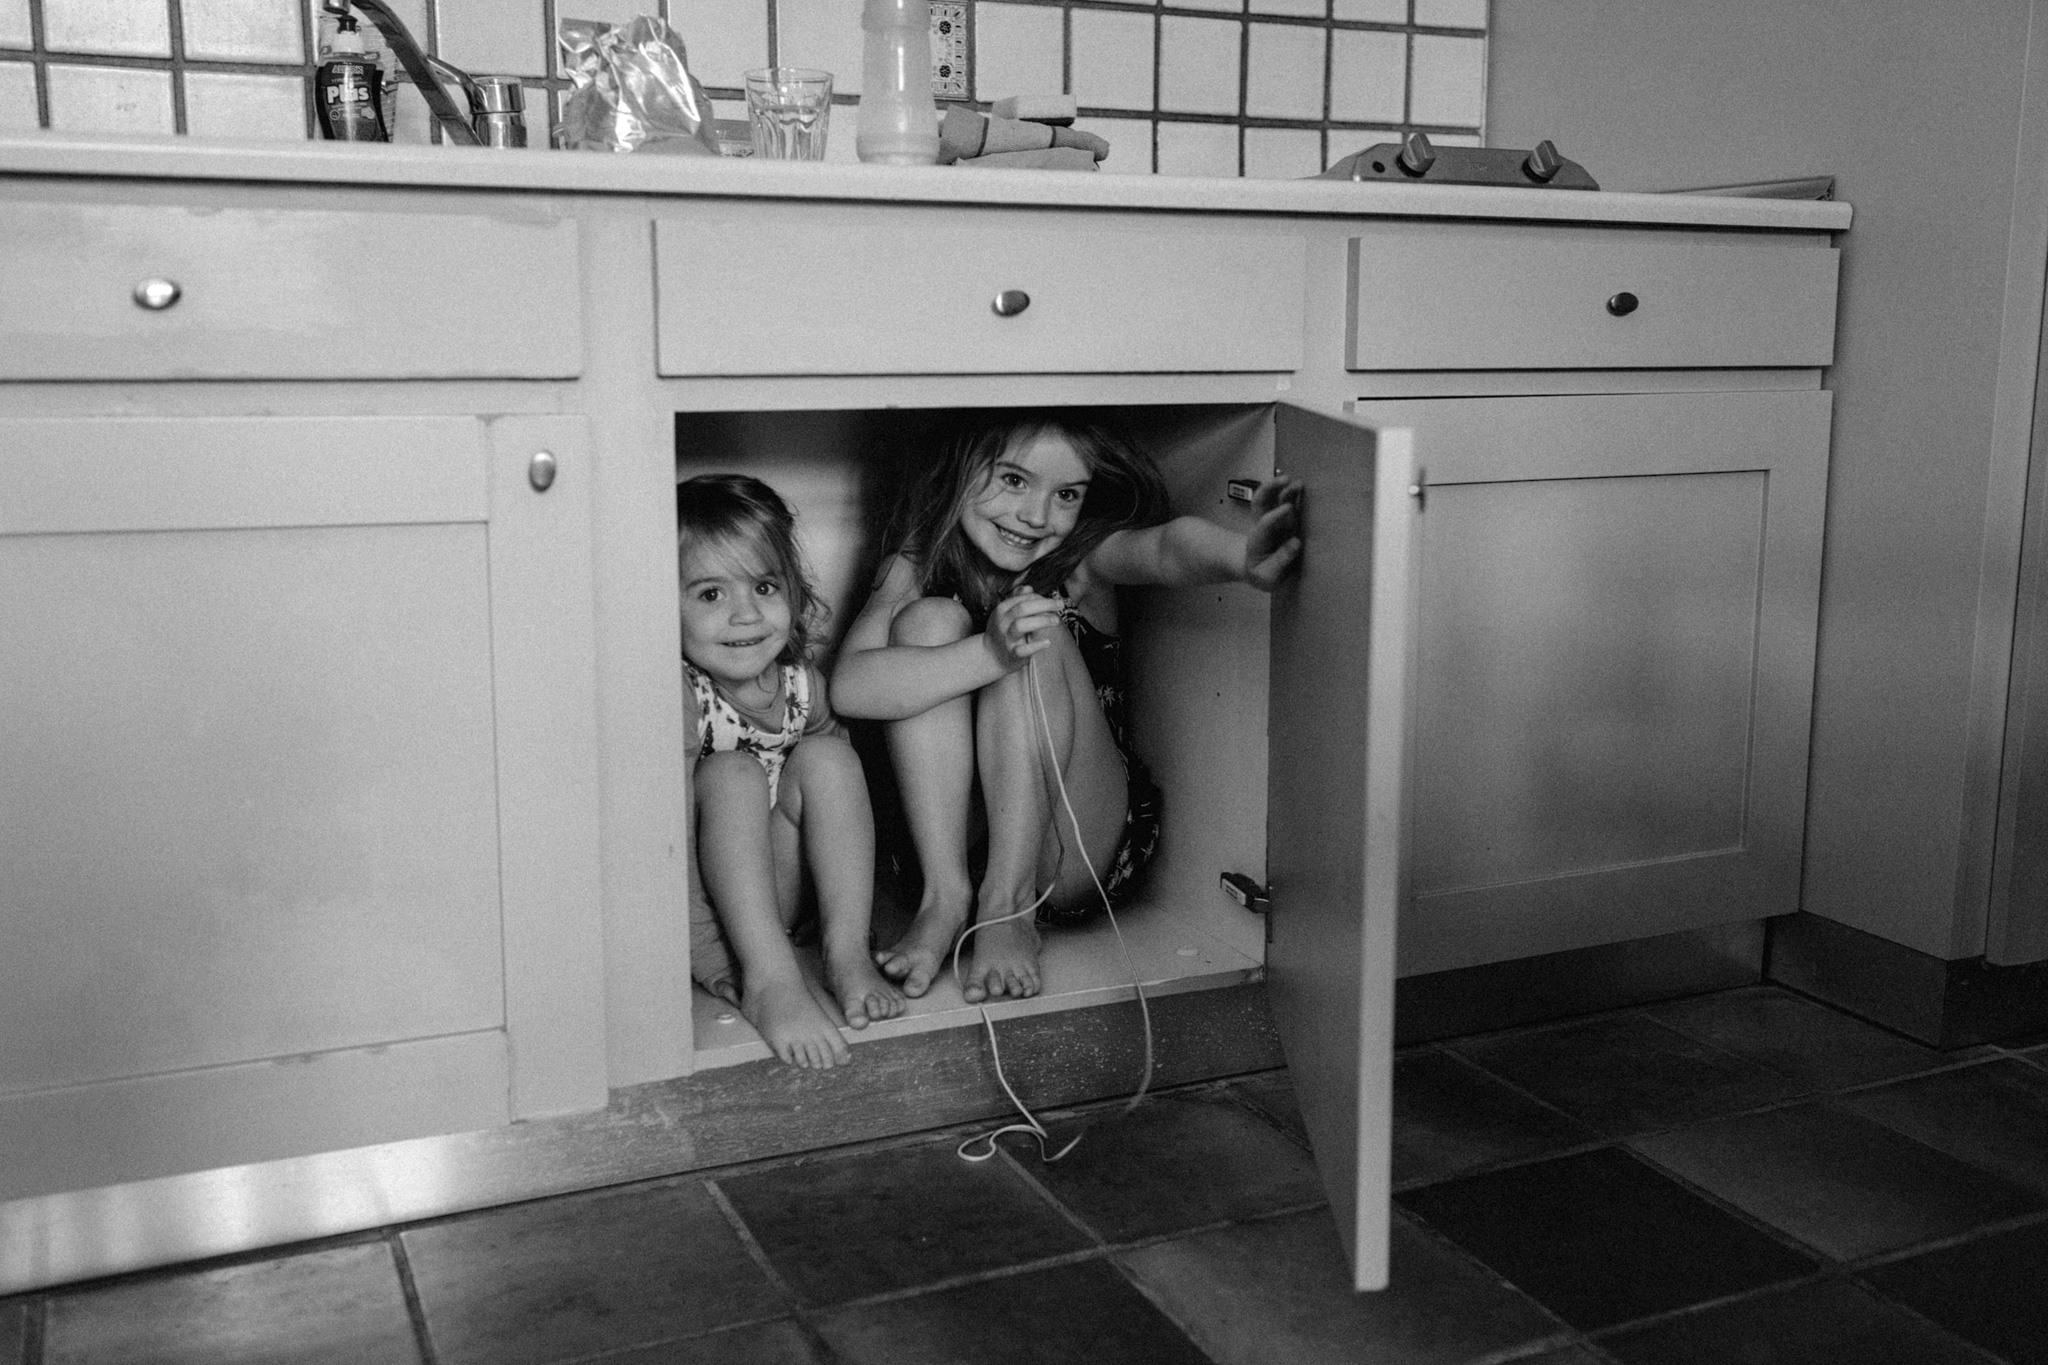 Sisters hiding in cupboard under sink